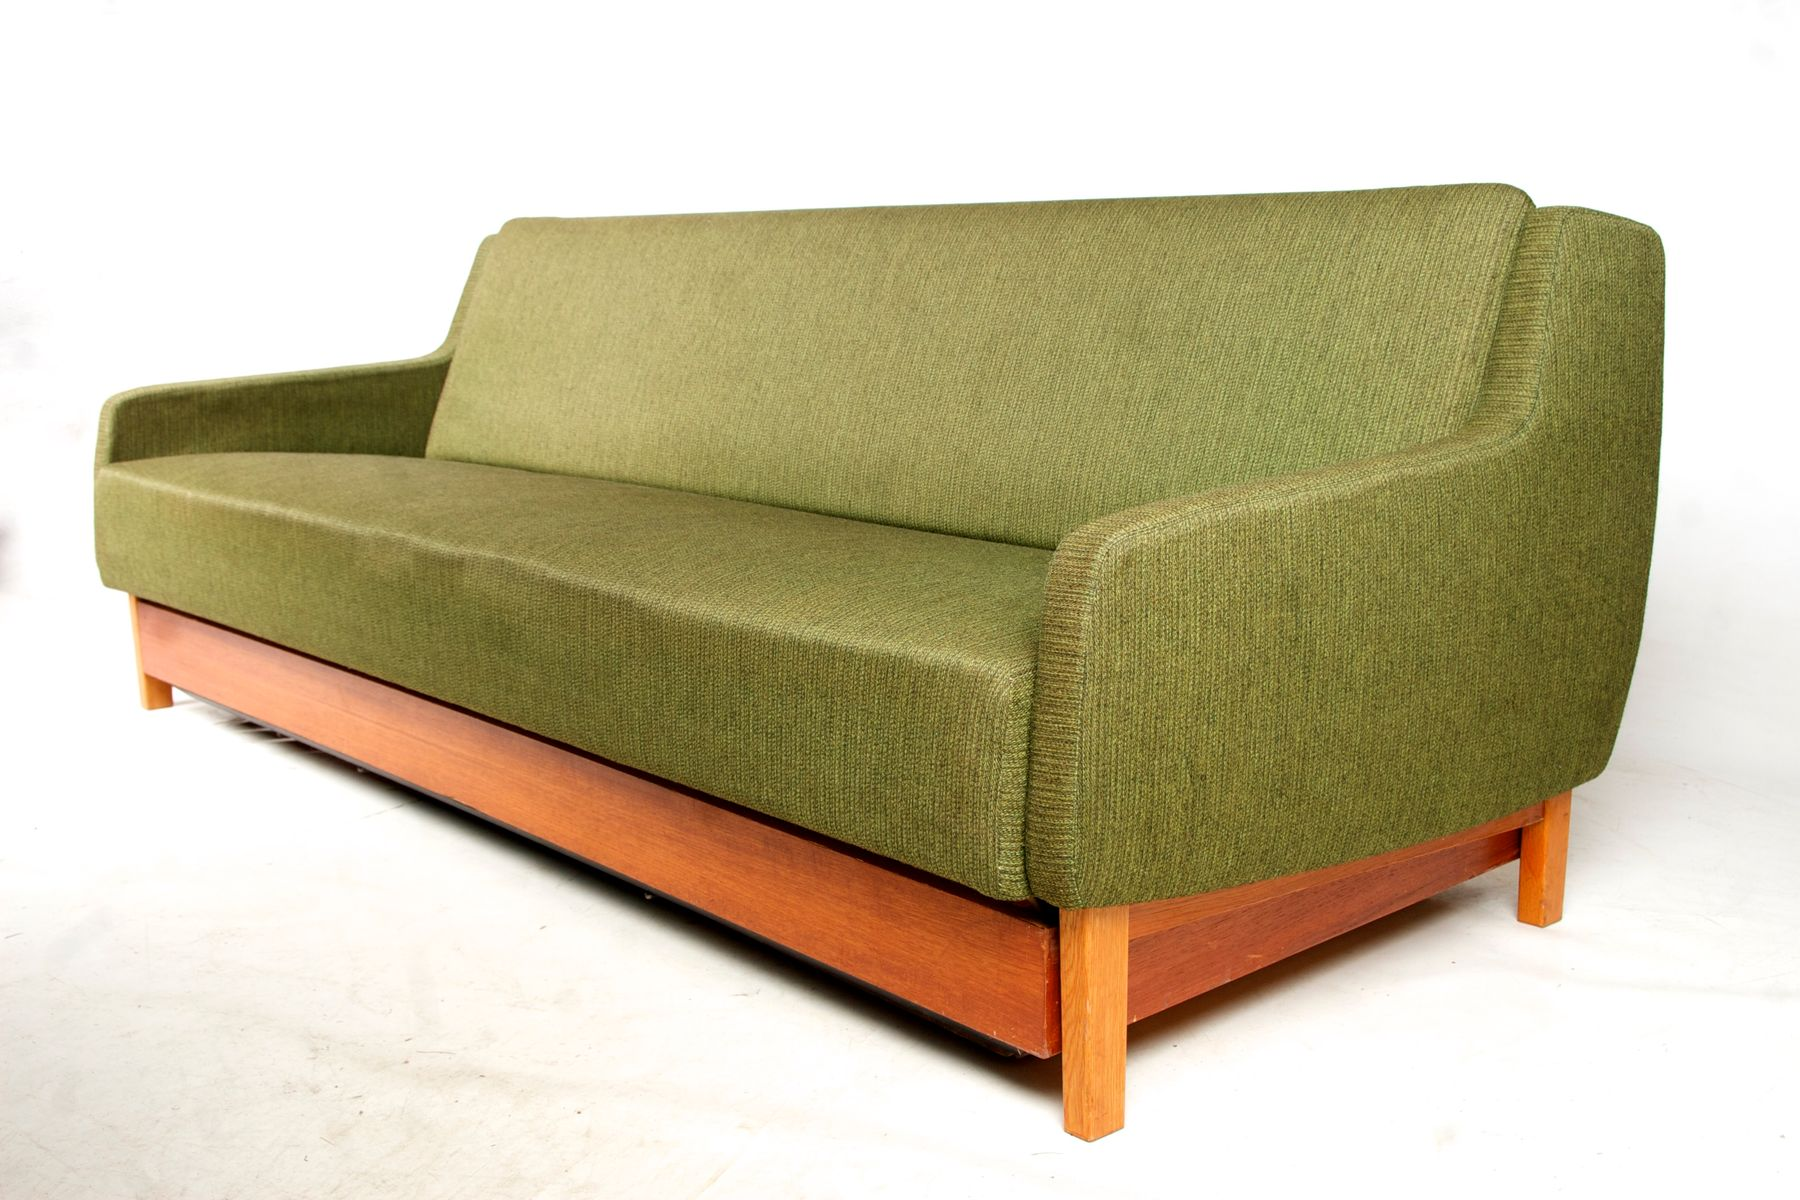 Vintage Danish Sofa Bed from K J Pettersson & Söner 1960s for